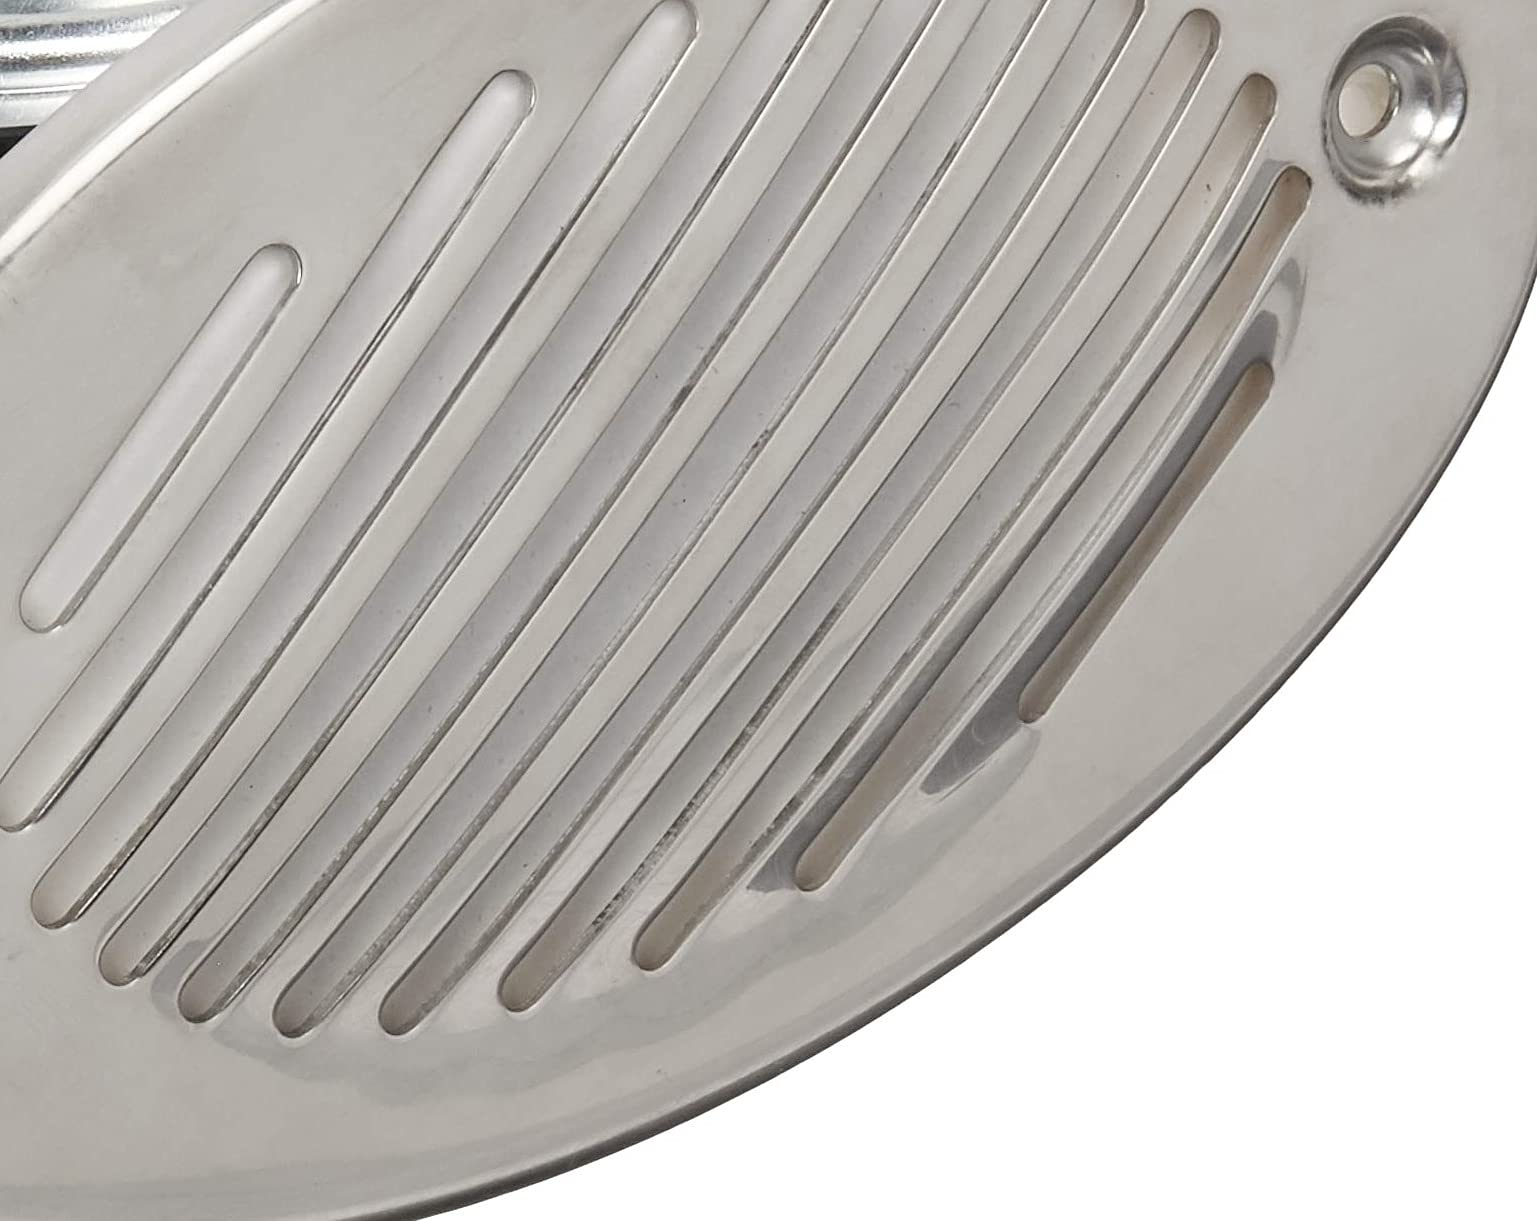 FIAMM 5190512 Marine Horn with Stainless Steel Grill,1 Pack